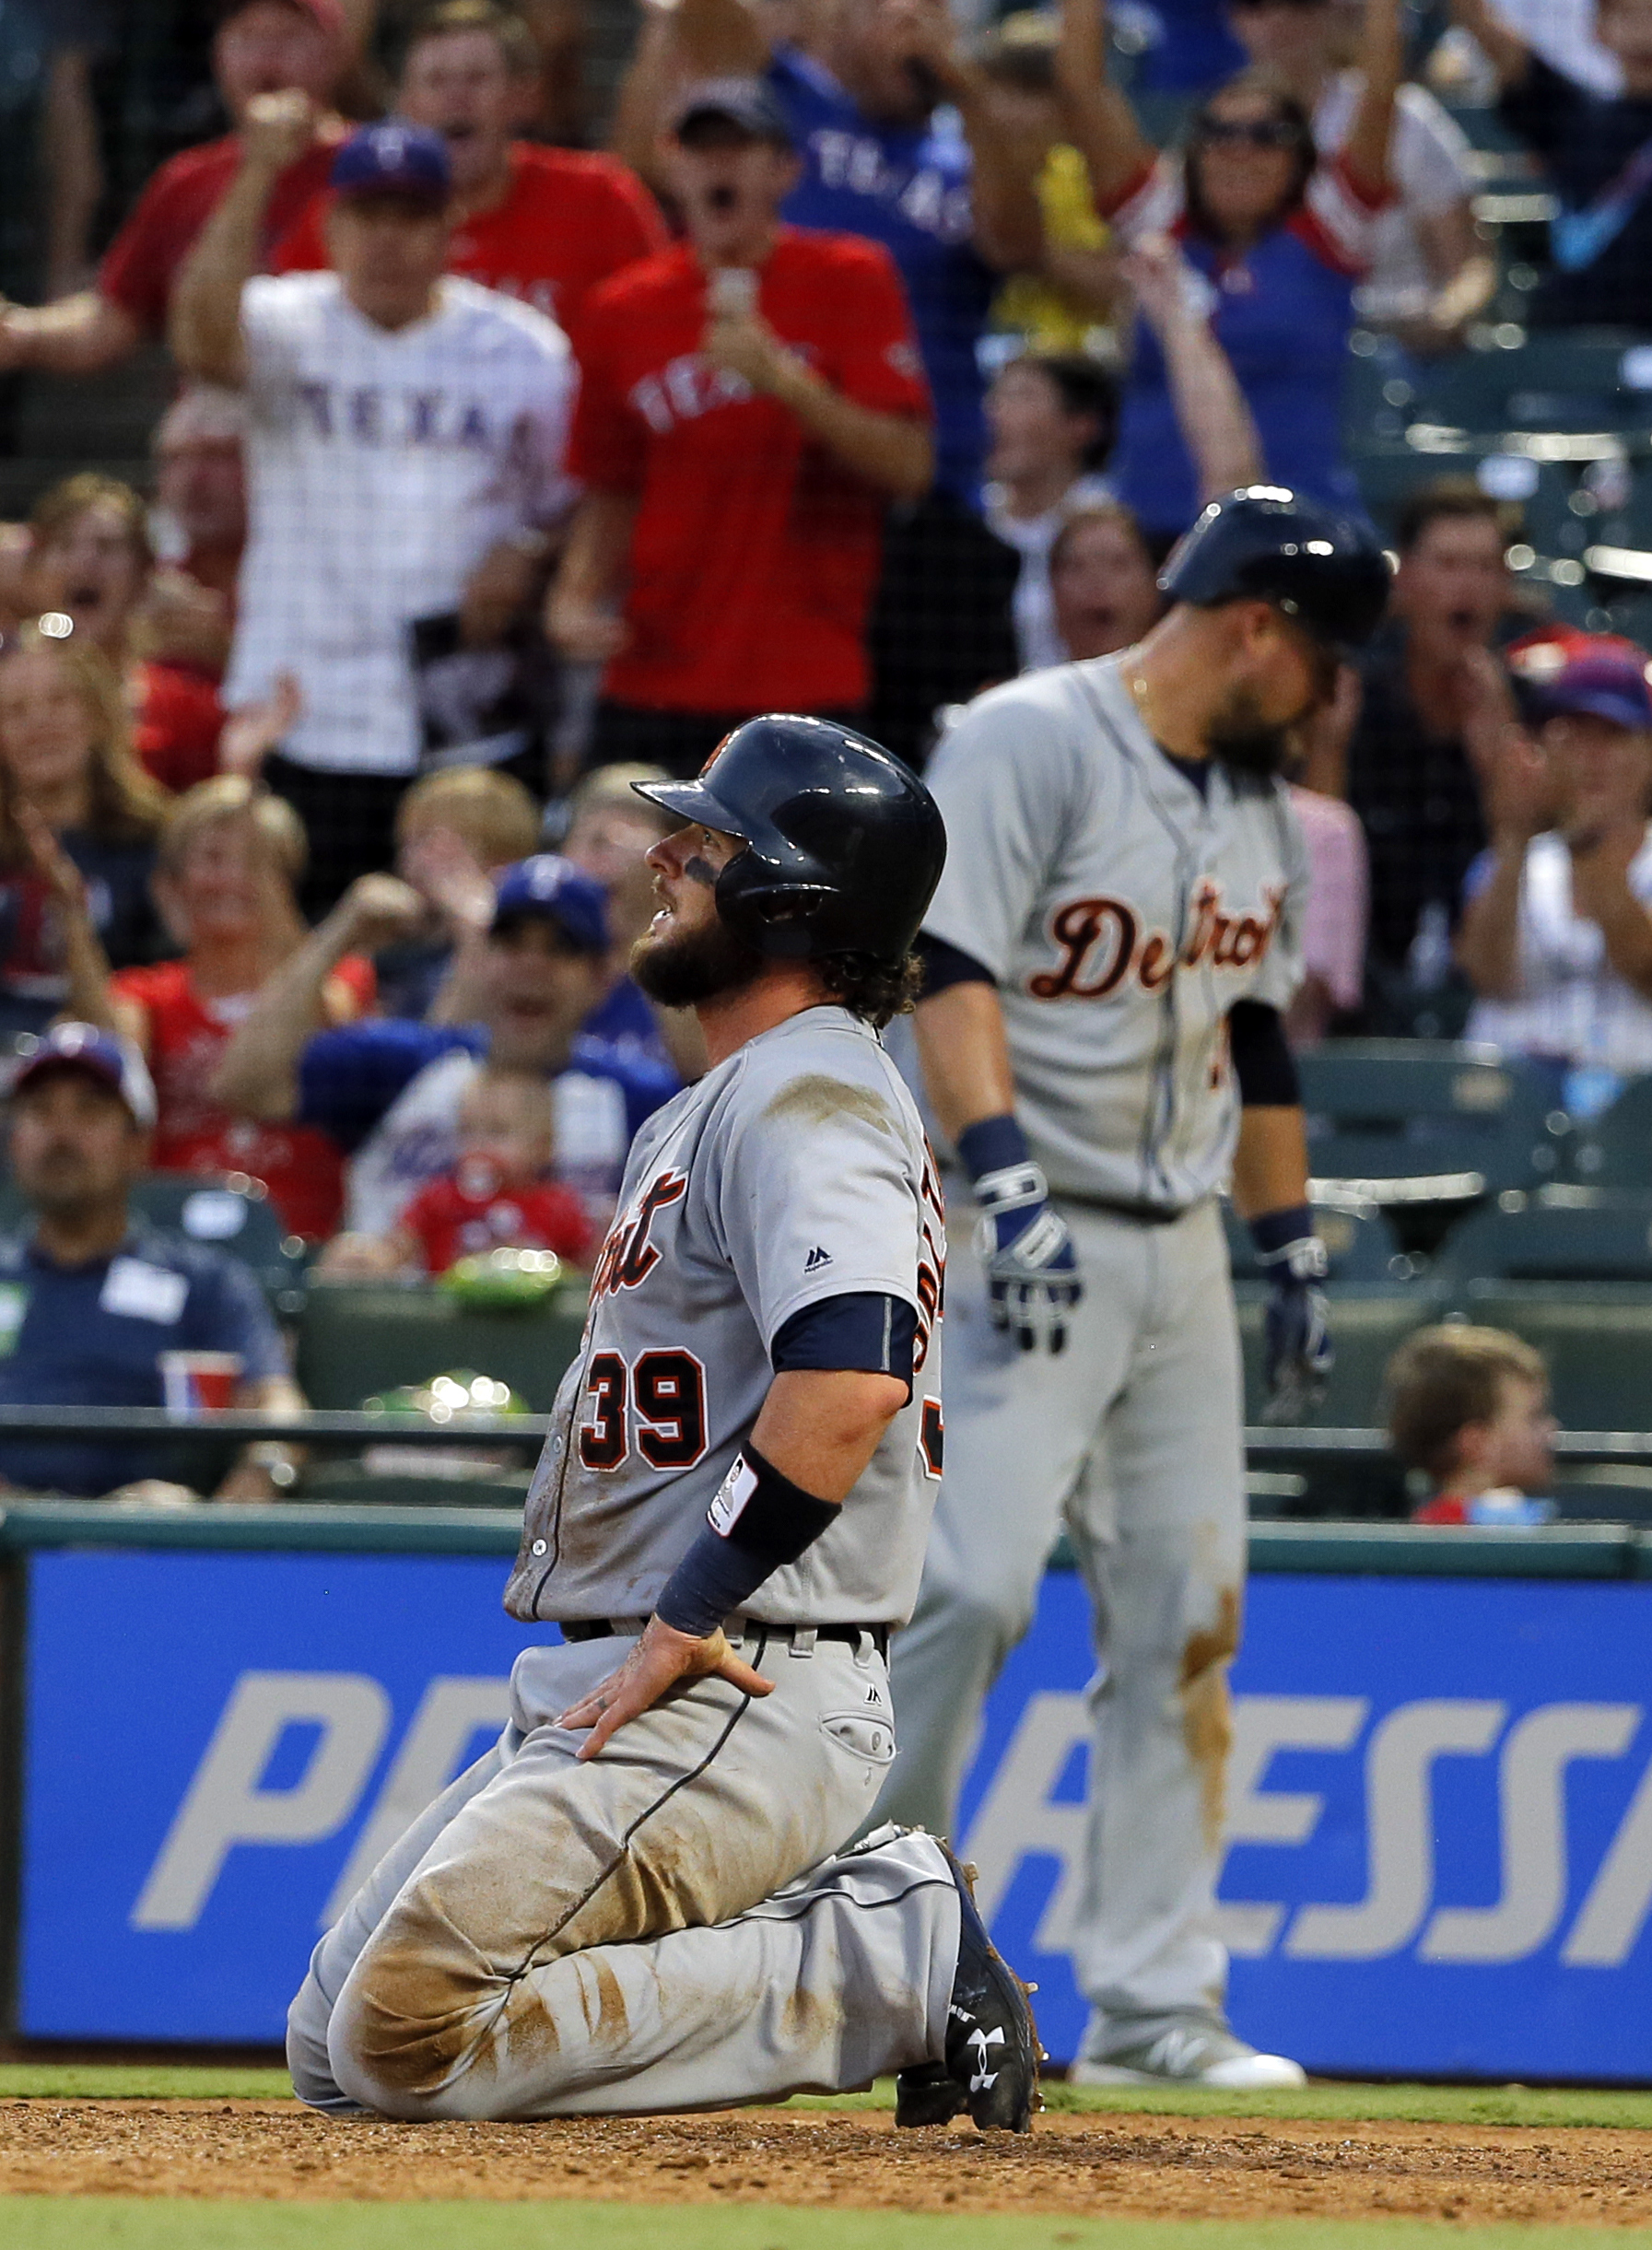 Detroit Tigers' Jarrod Saltalamacchia kneels by the plate moments after being tagged out by Texas Rangers' Jonathan Lucroy on a close play at the plate in the fourth inning of a baseball game, Saturday, Aug. 13, 2016, in Arlington, Texas. Saltalamacchia w